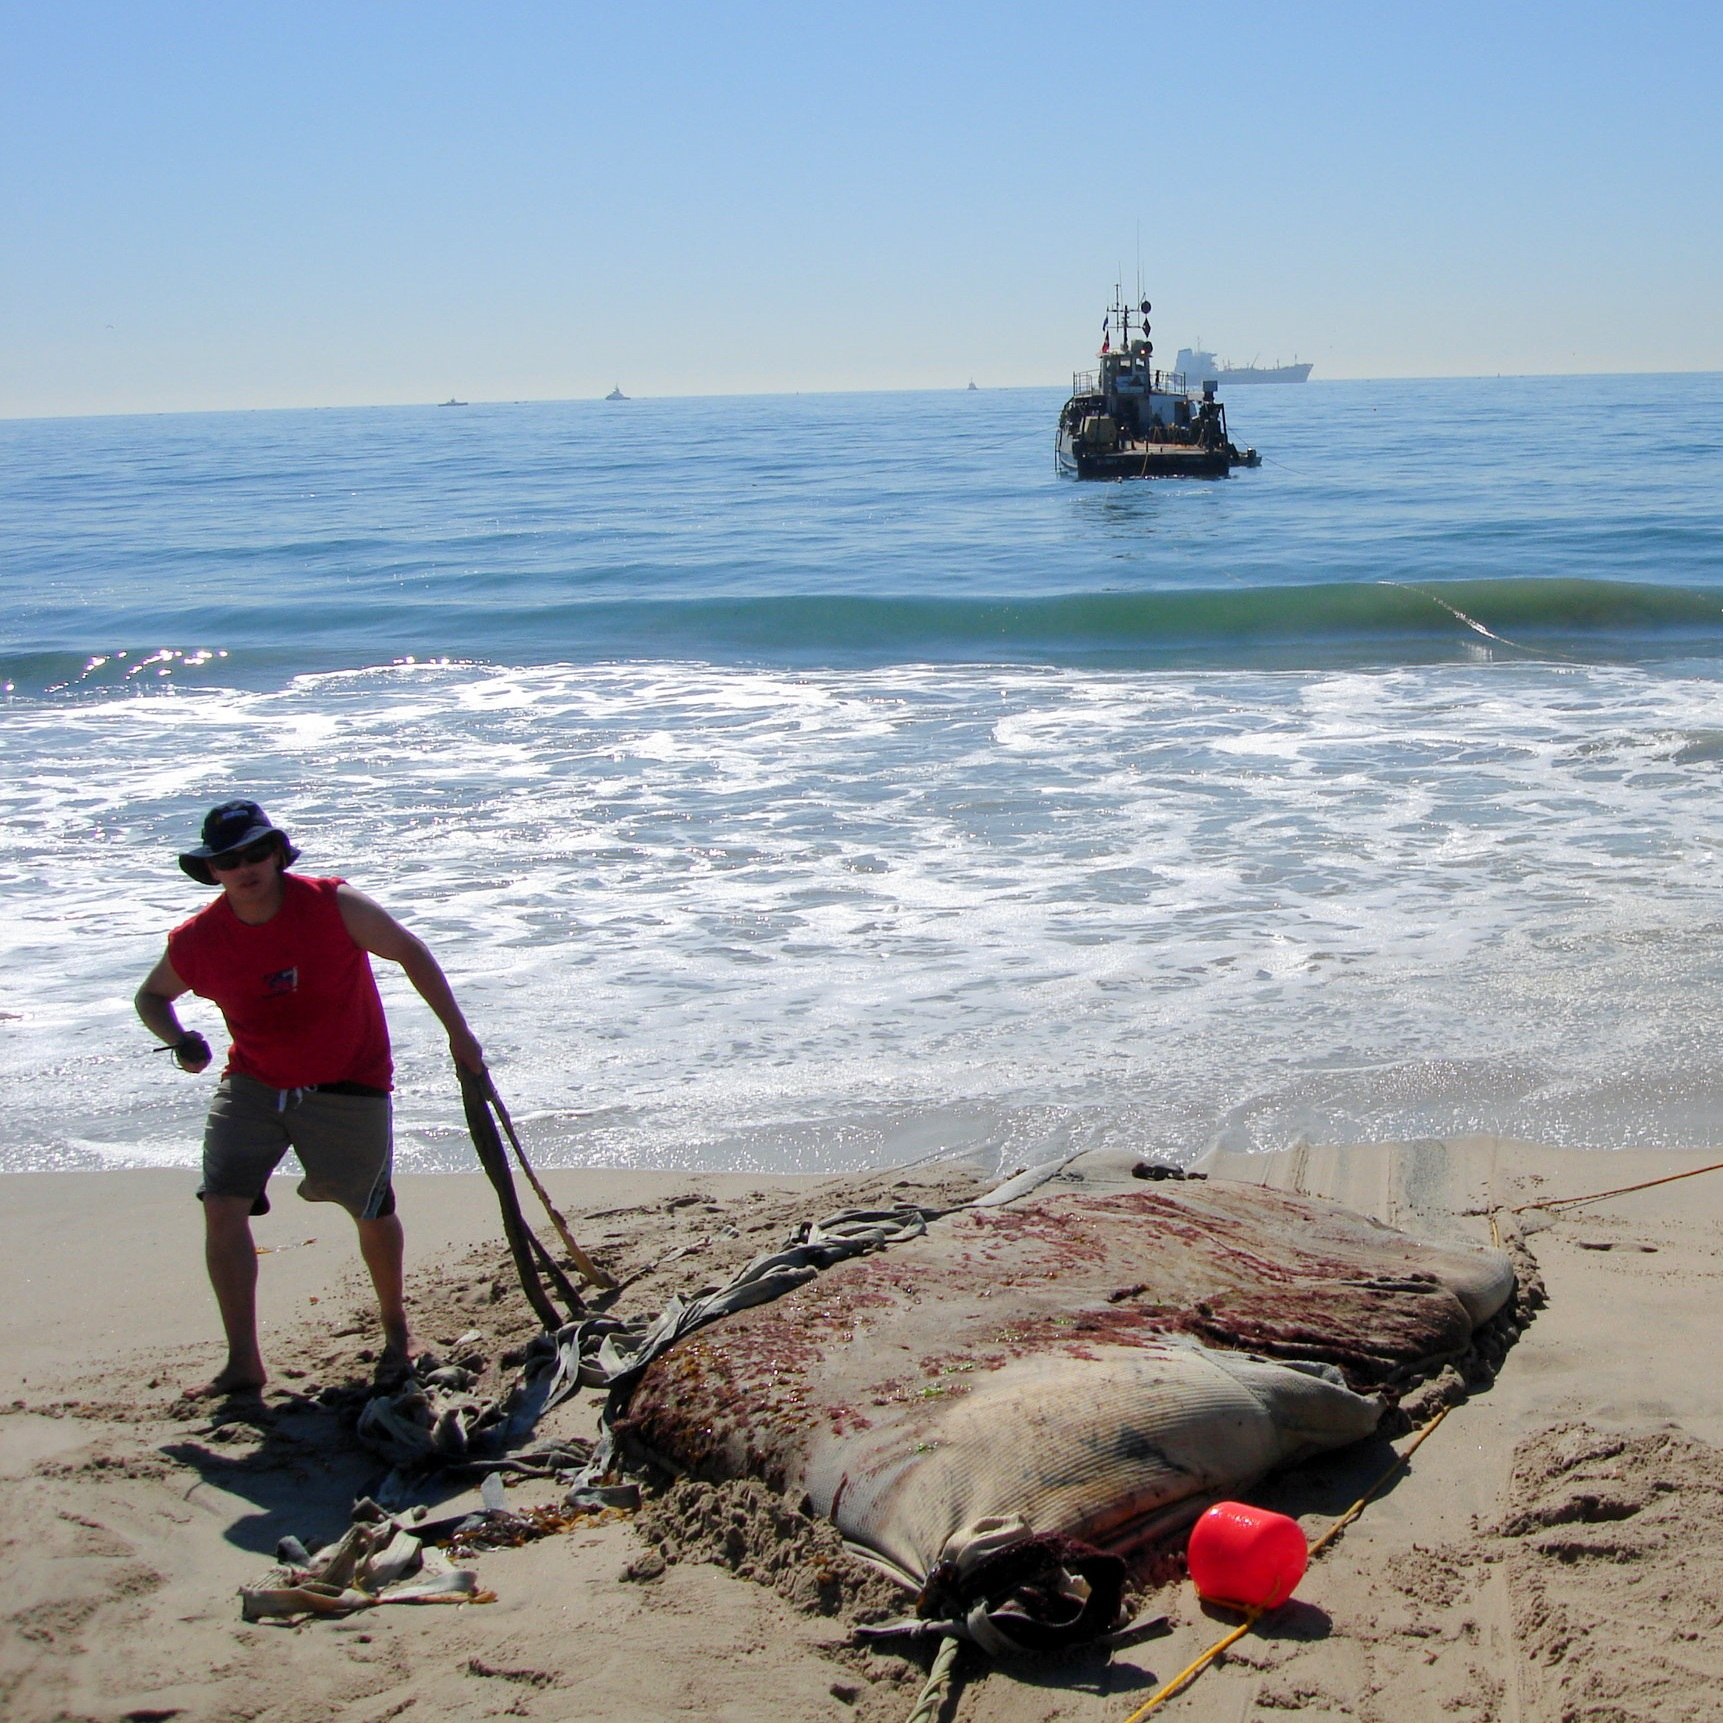 REMOVAL OF PRATTE'S REEF - A MAN-MADE SURF ENHANCEMENT STRUCTURE